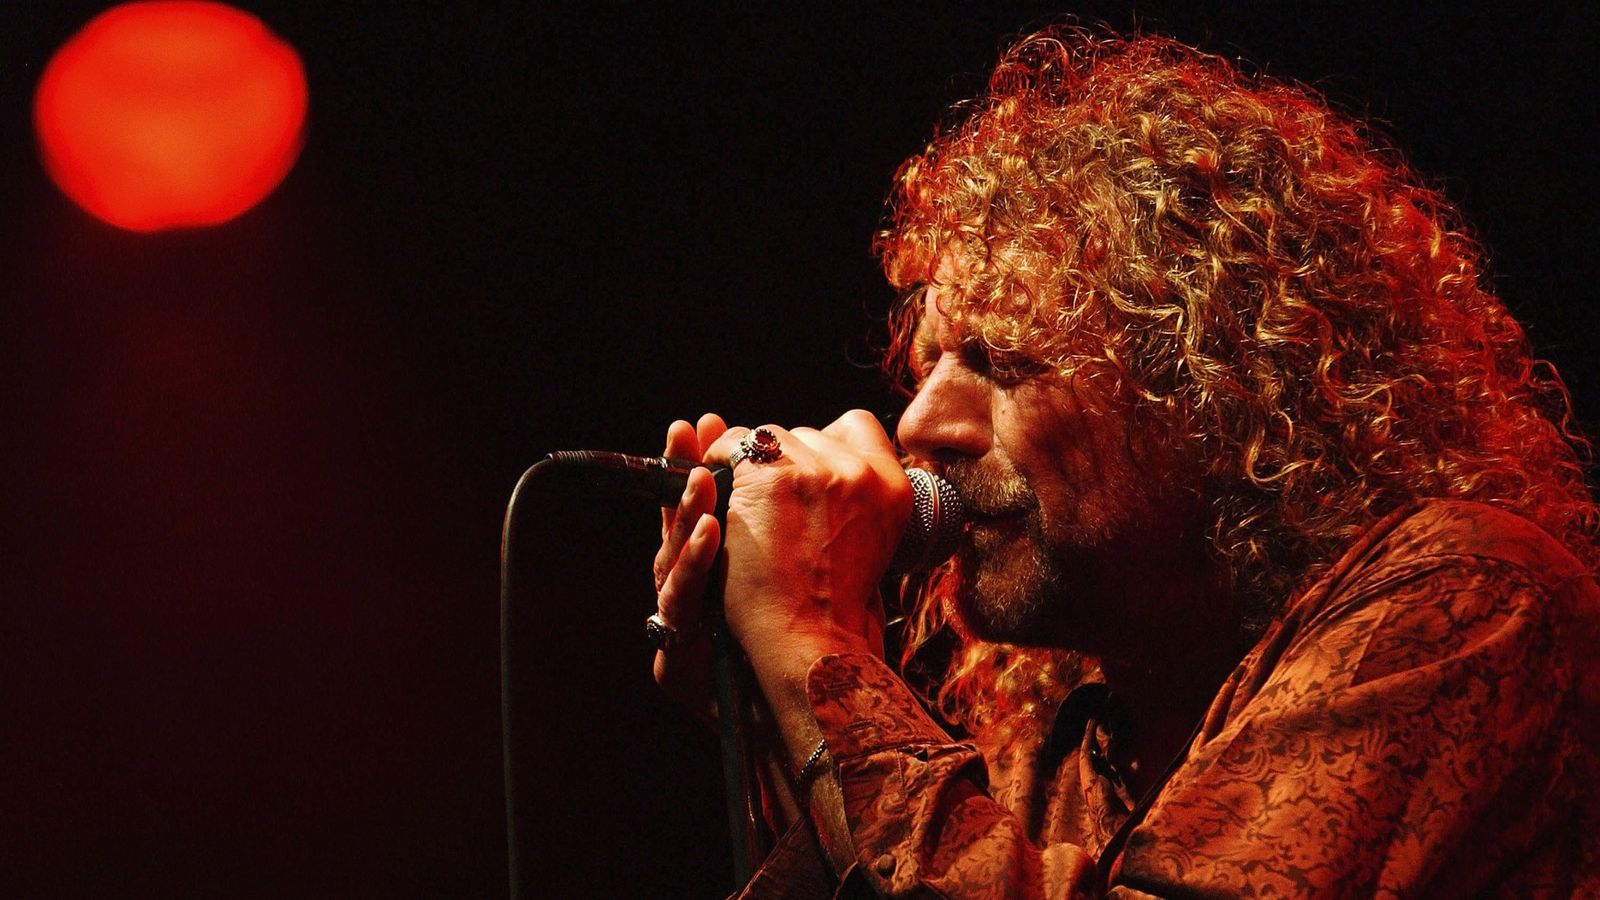 led zeppelin reunion rumours triggered by cryptic robert plant message ents arts news sky news. Black Bedroom Furniture Sets. Home Design Ideas